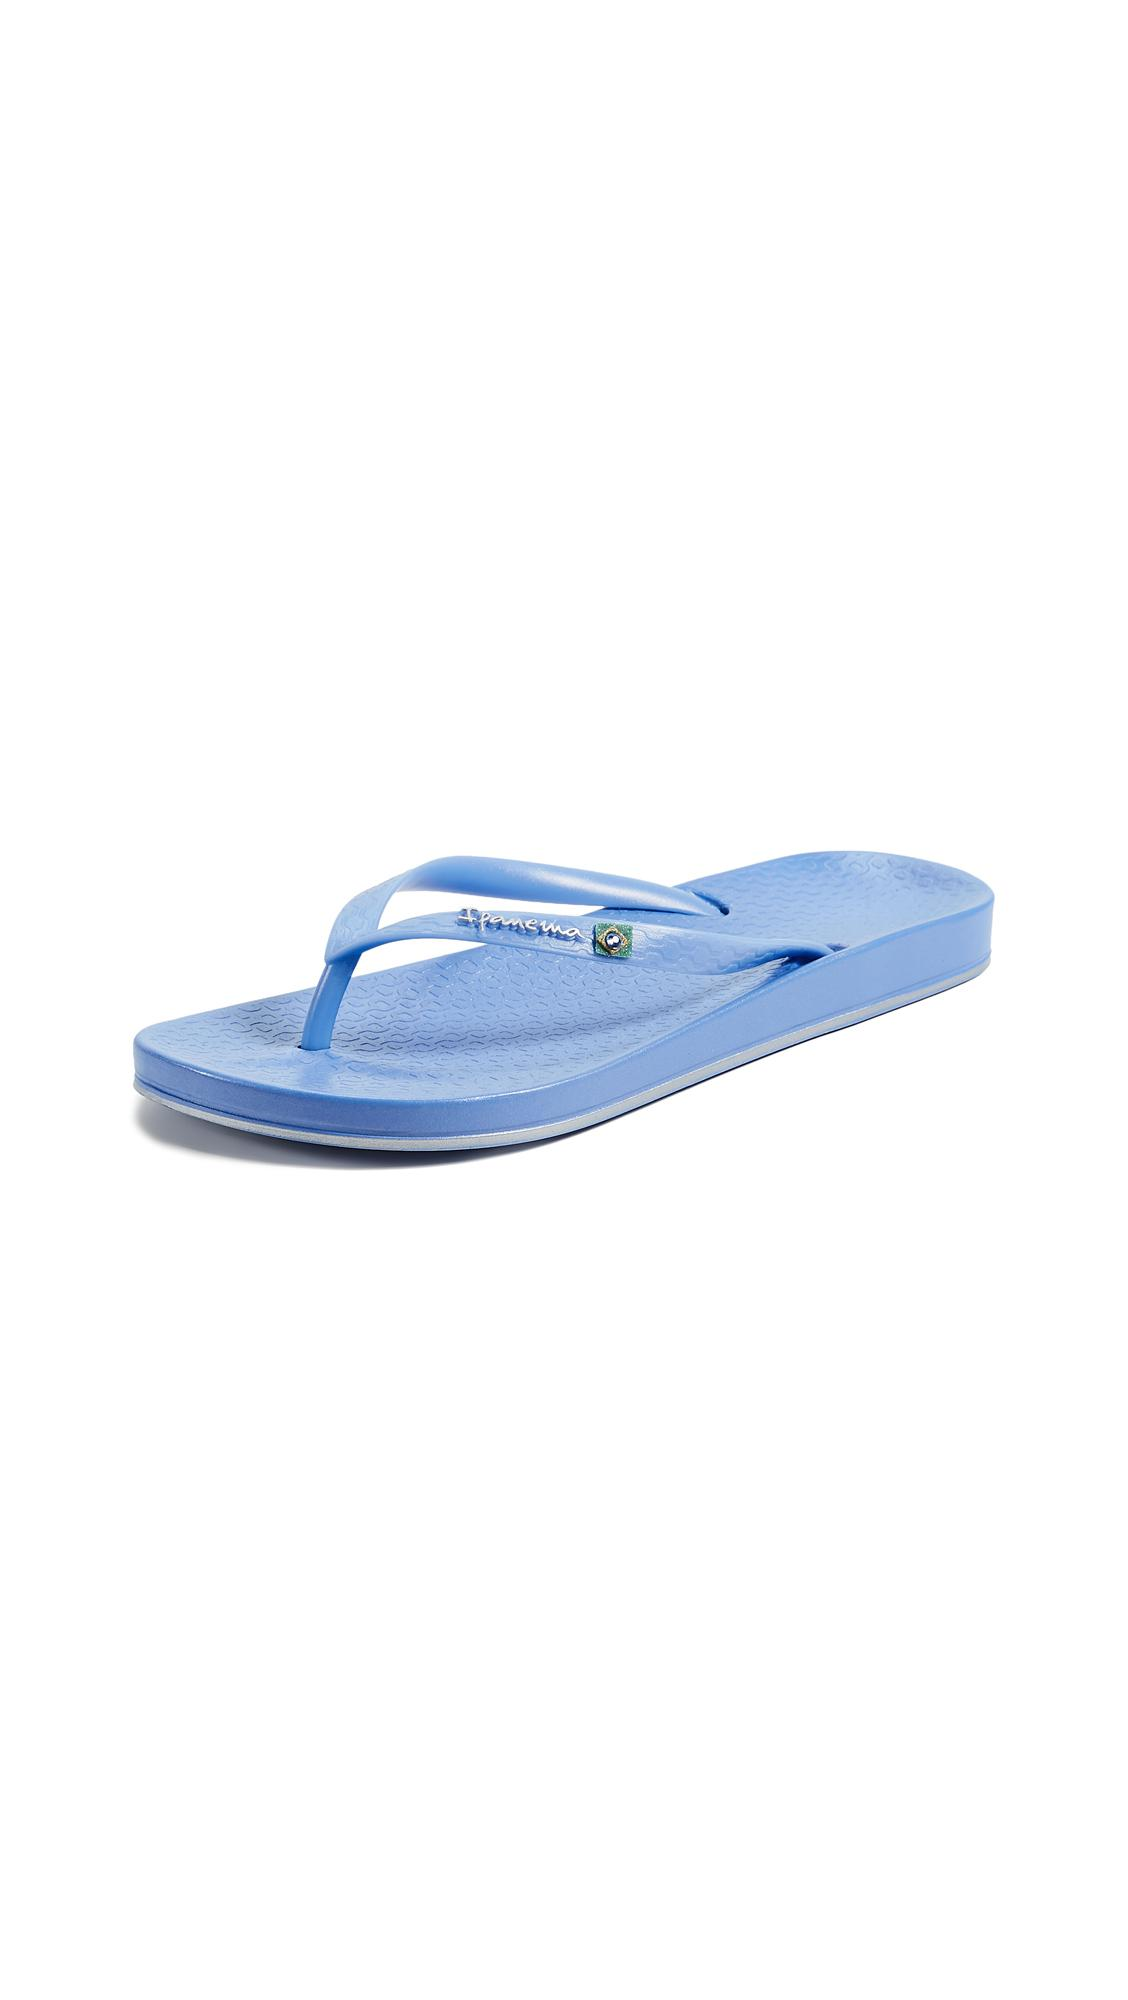 996eab11ba44 Ipanema Brilliant Brazilian Flip Flops in Blue - Lyst